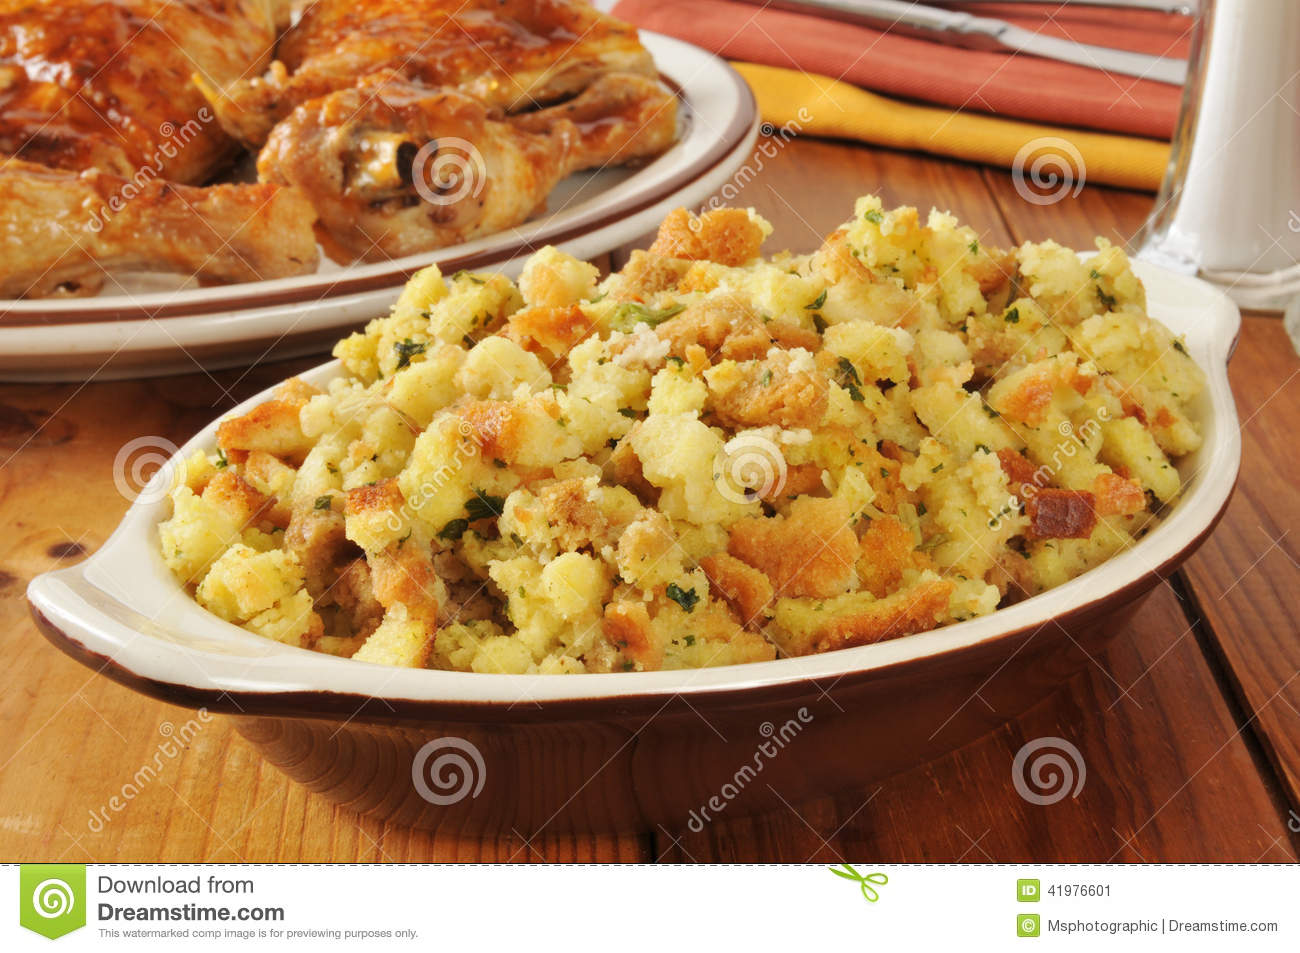 Corn Bread Stuffing With Chicken Stock Image - Image of